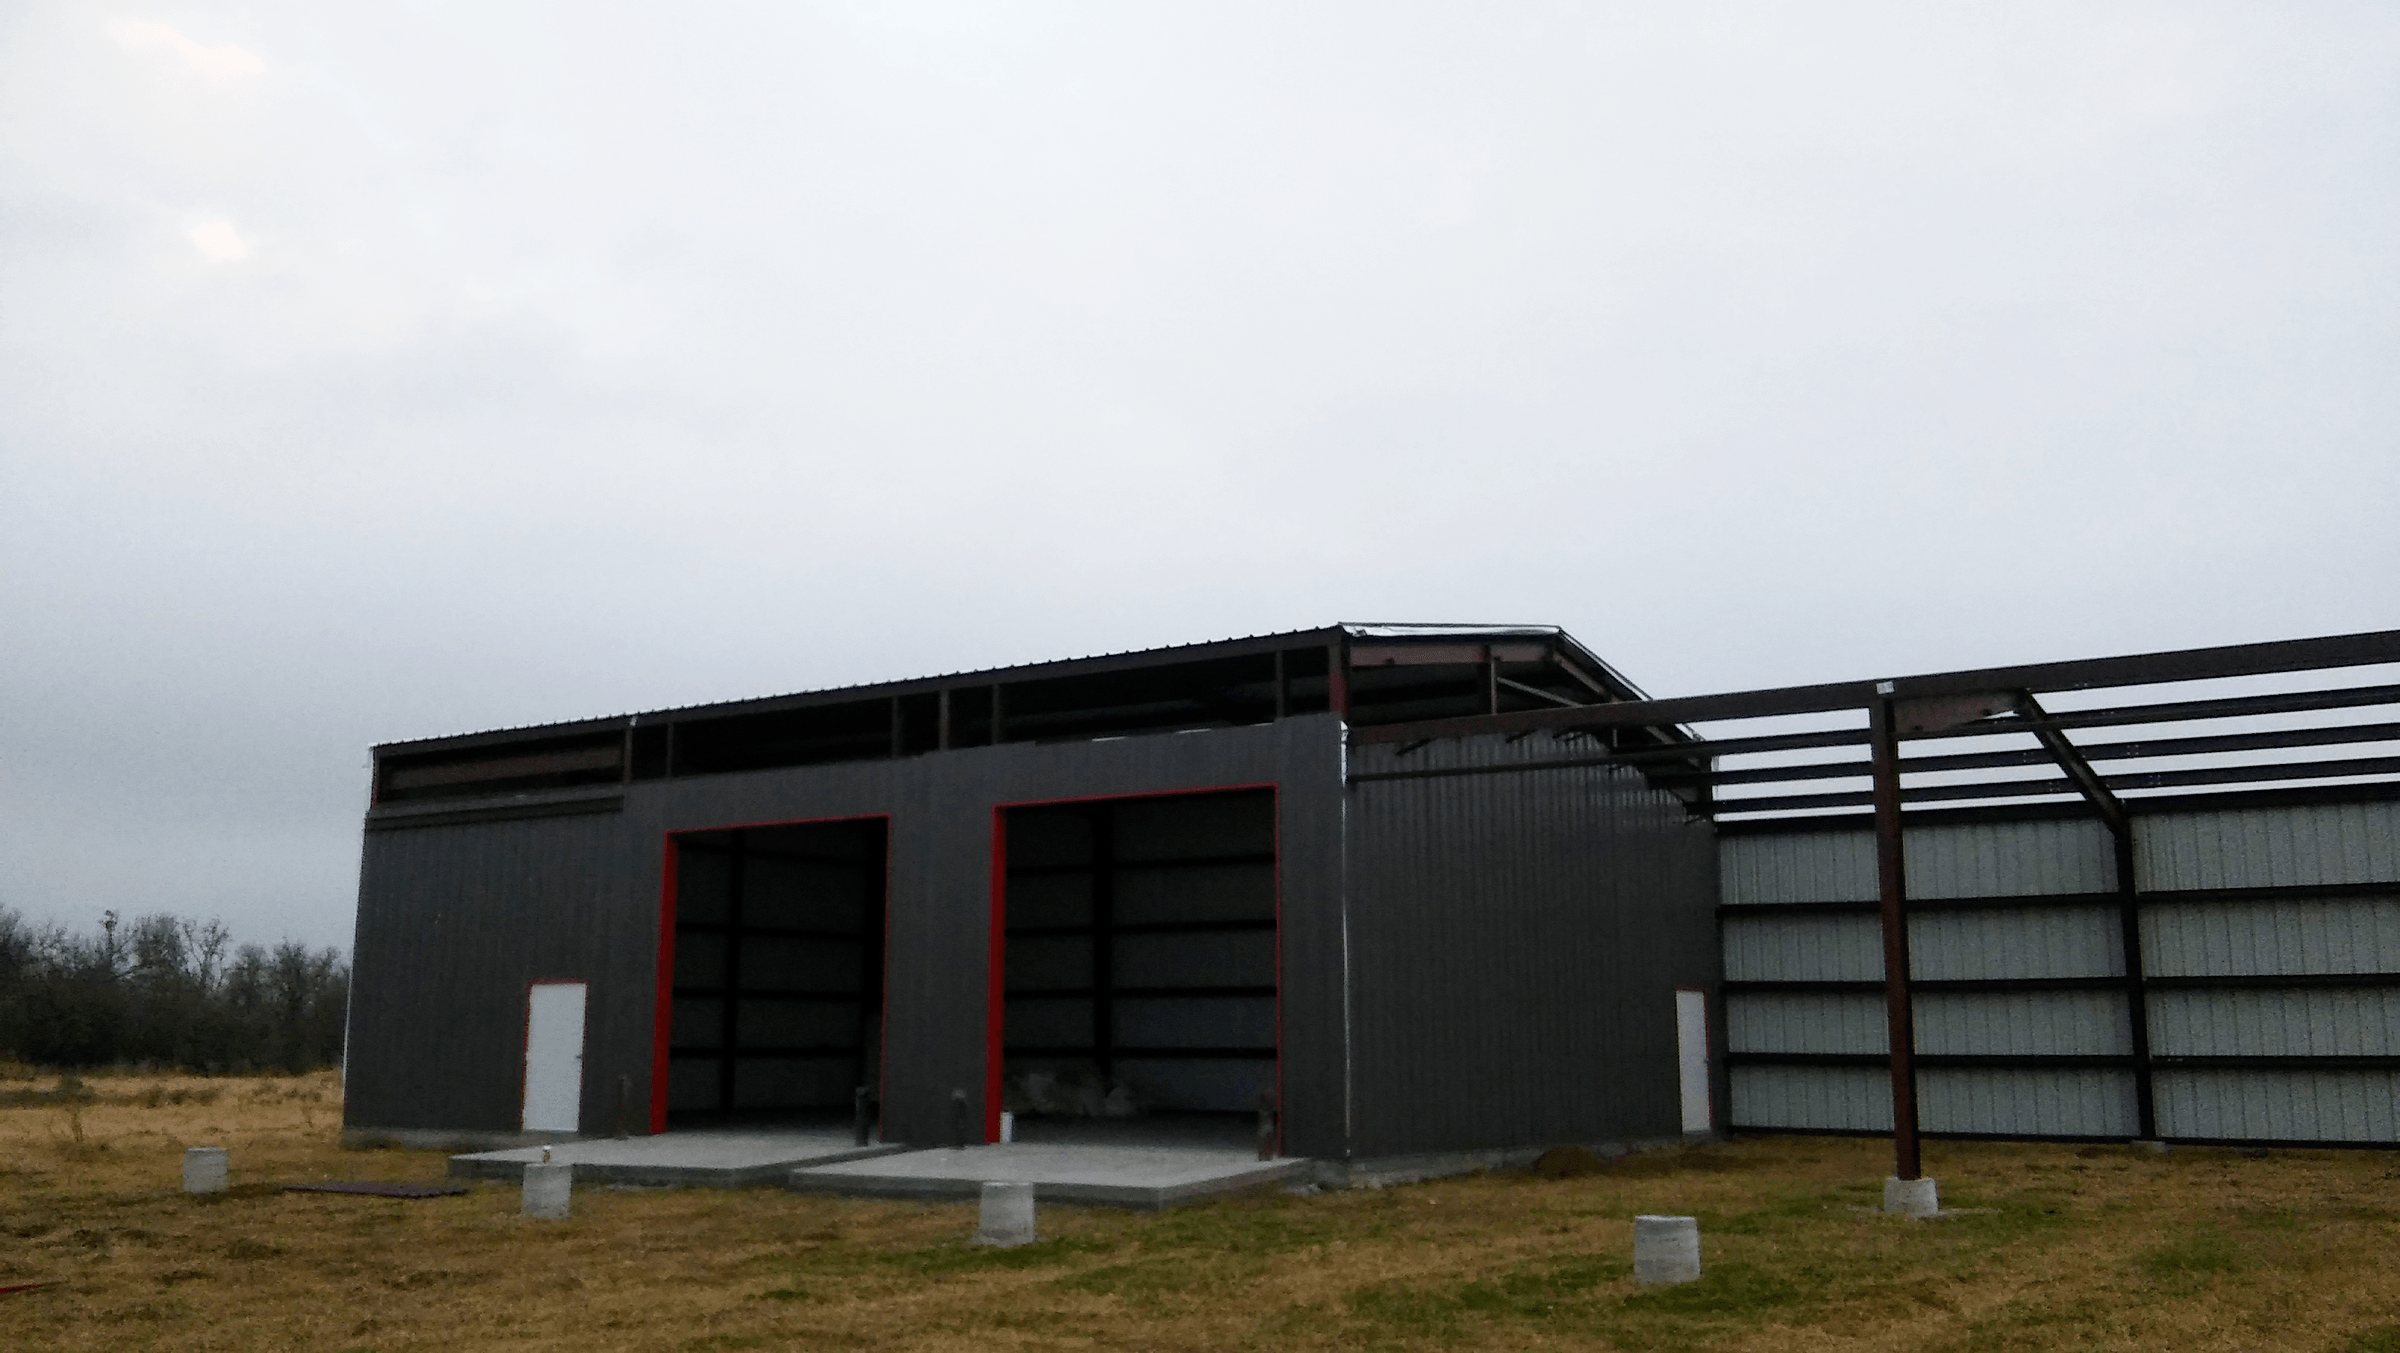 Almost ready to put the overhang on the front of the building.